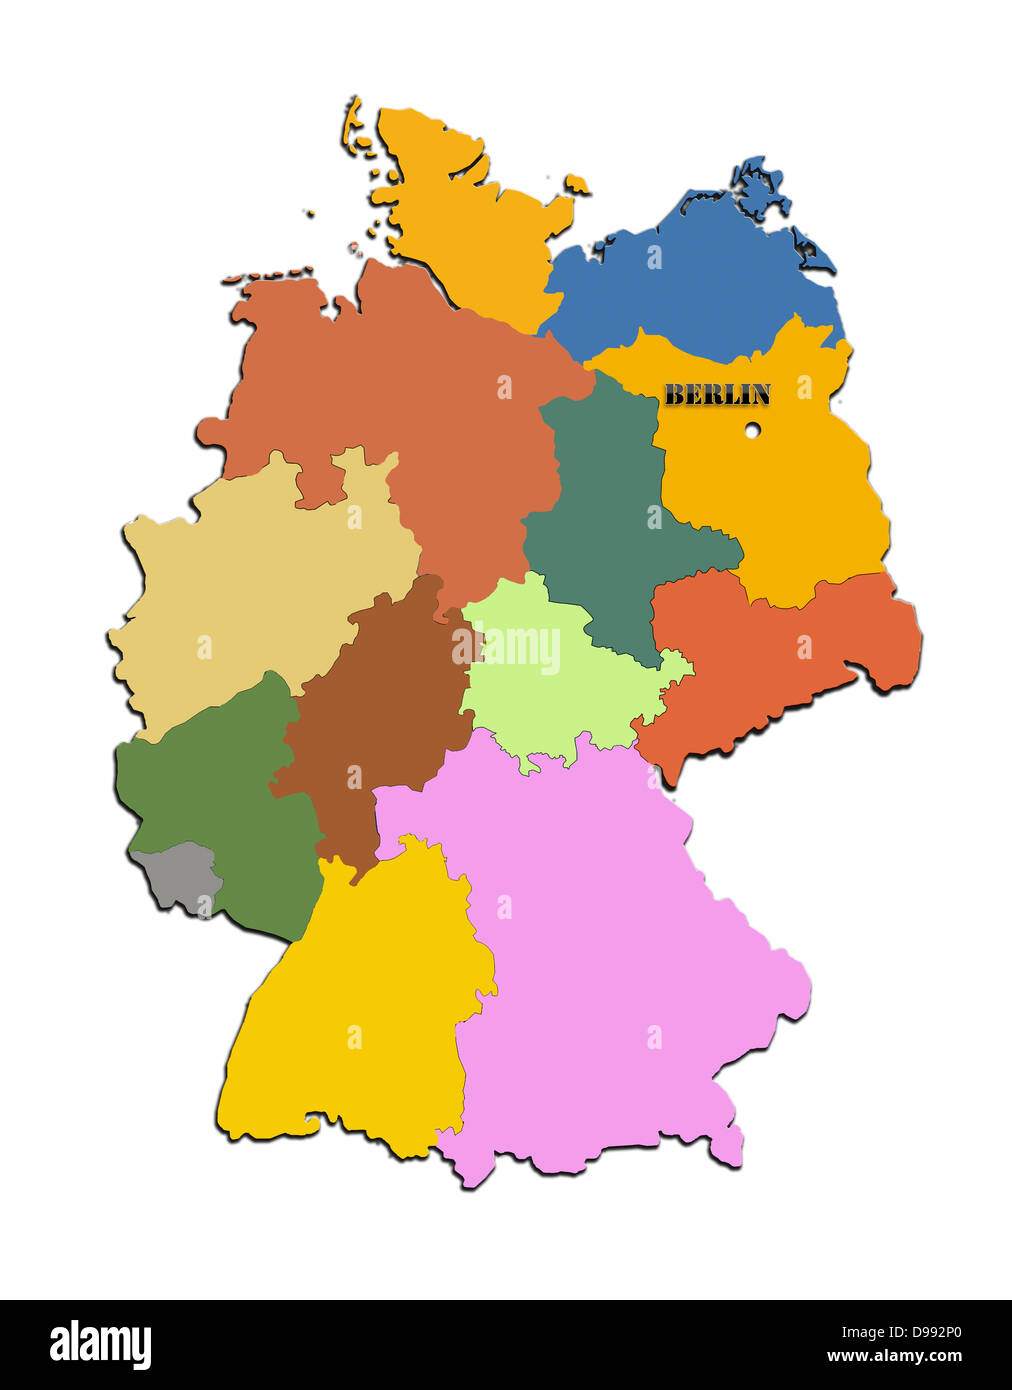 Coloured silhouette of the map of Germany - Stock Image